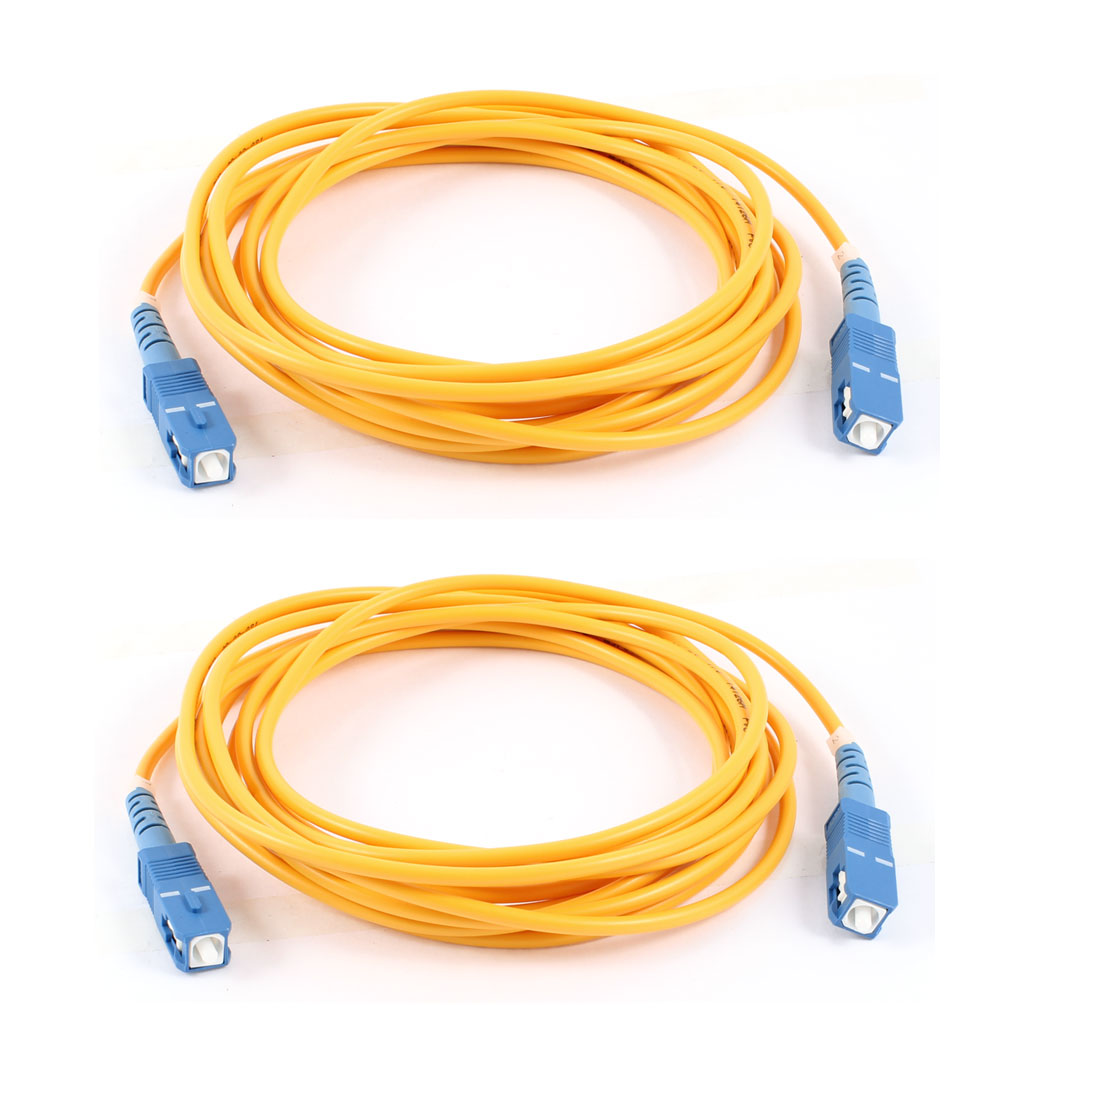 2 Pcs Simplex Single Mode SC to SC Fiber Optic Patch Jump Cable Yellow 3 Meters